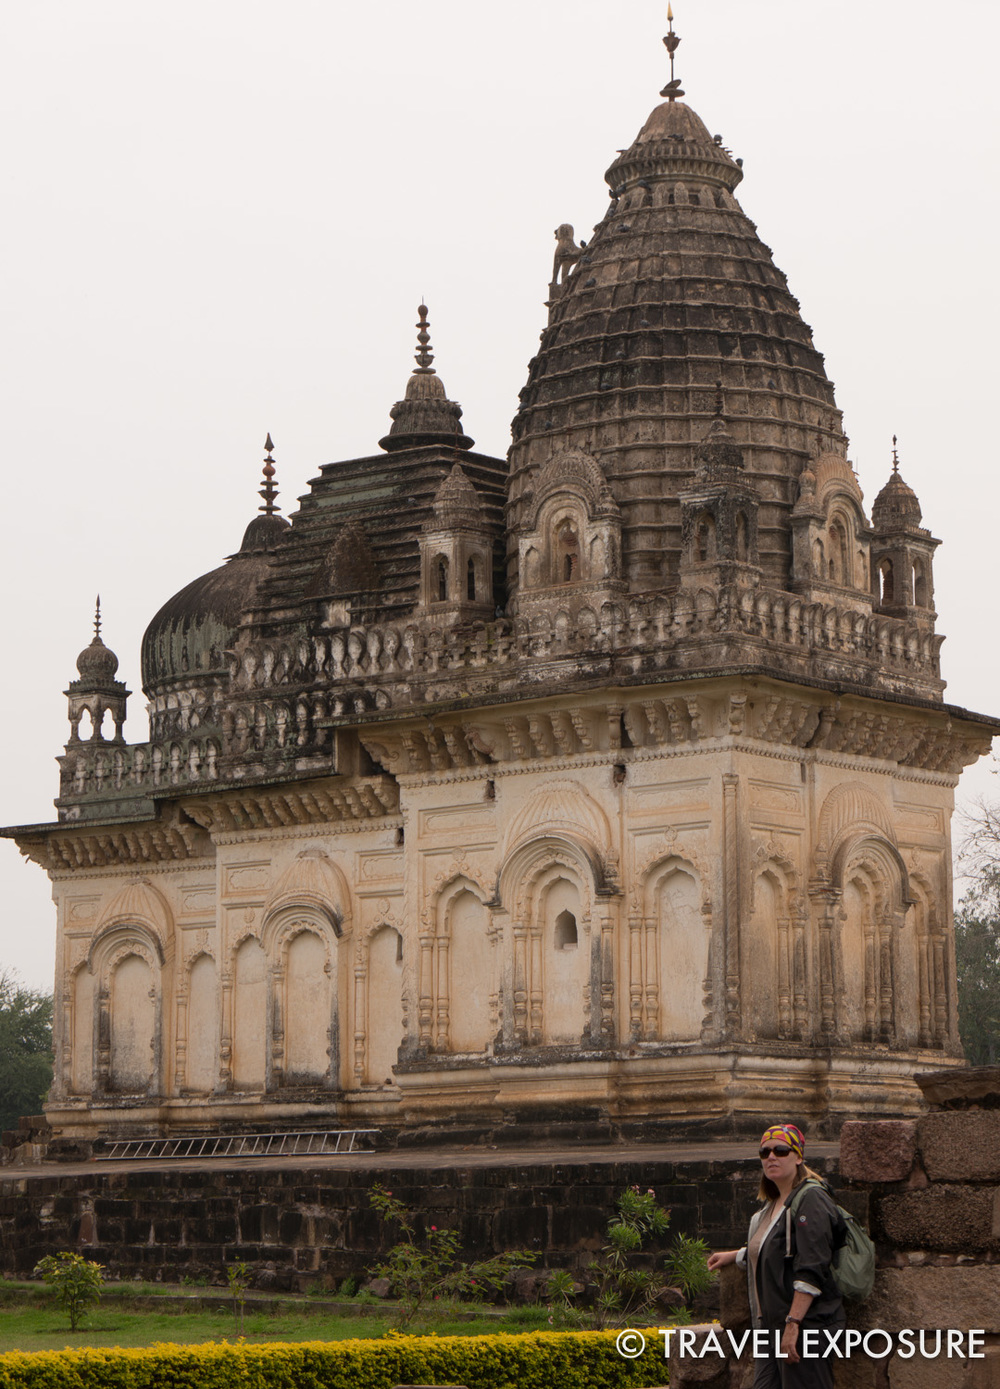 The ancient temples at Khajuraho were amazing. This newer temple incorporatesthree different domes representing multiple faiths in the community.